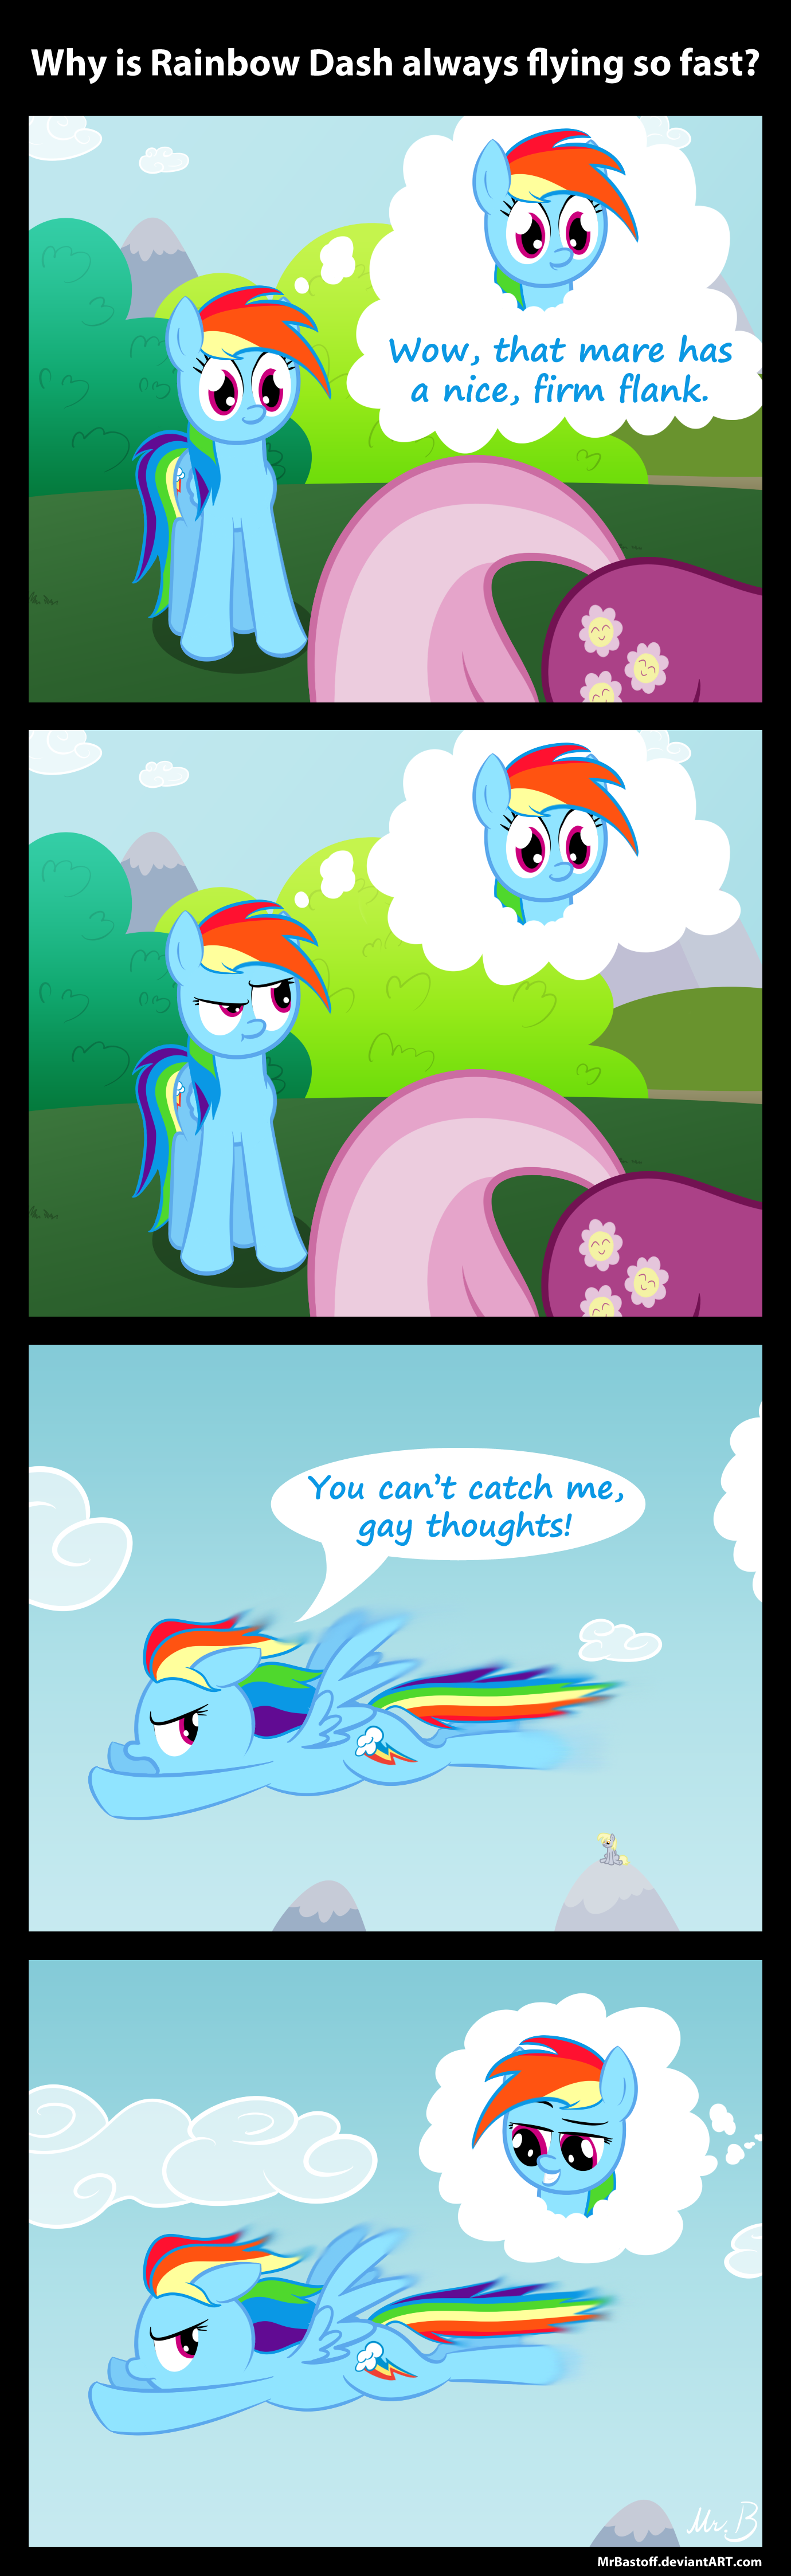 http://orig13.deviantart.net/1783/f/2012/281/2/9/why_rainbow_dash_is_flying_so_fast_by_mrbastoff-d5gm34i.png